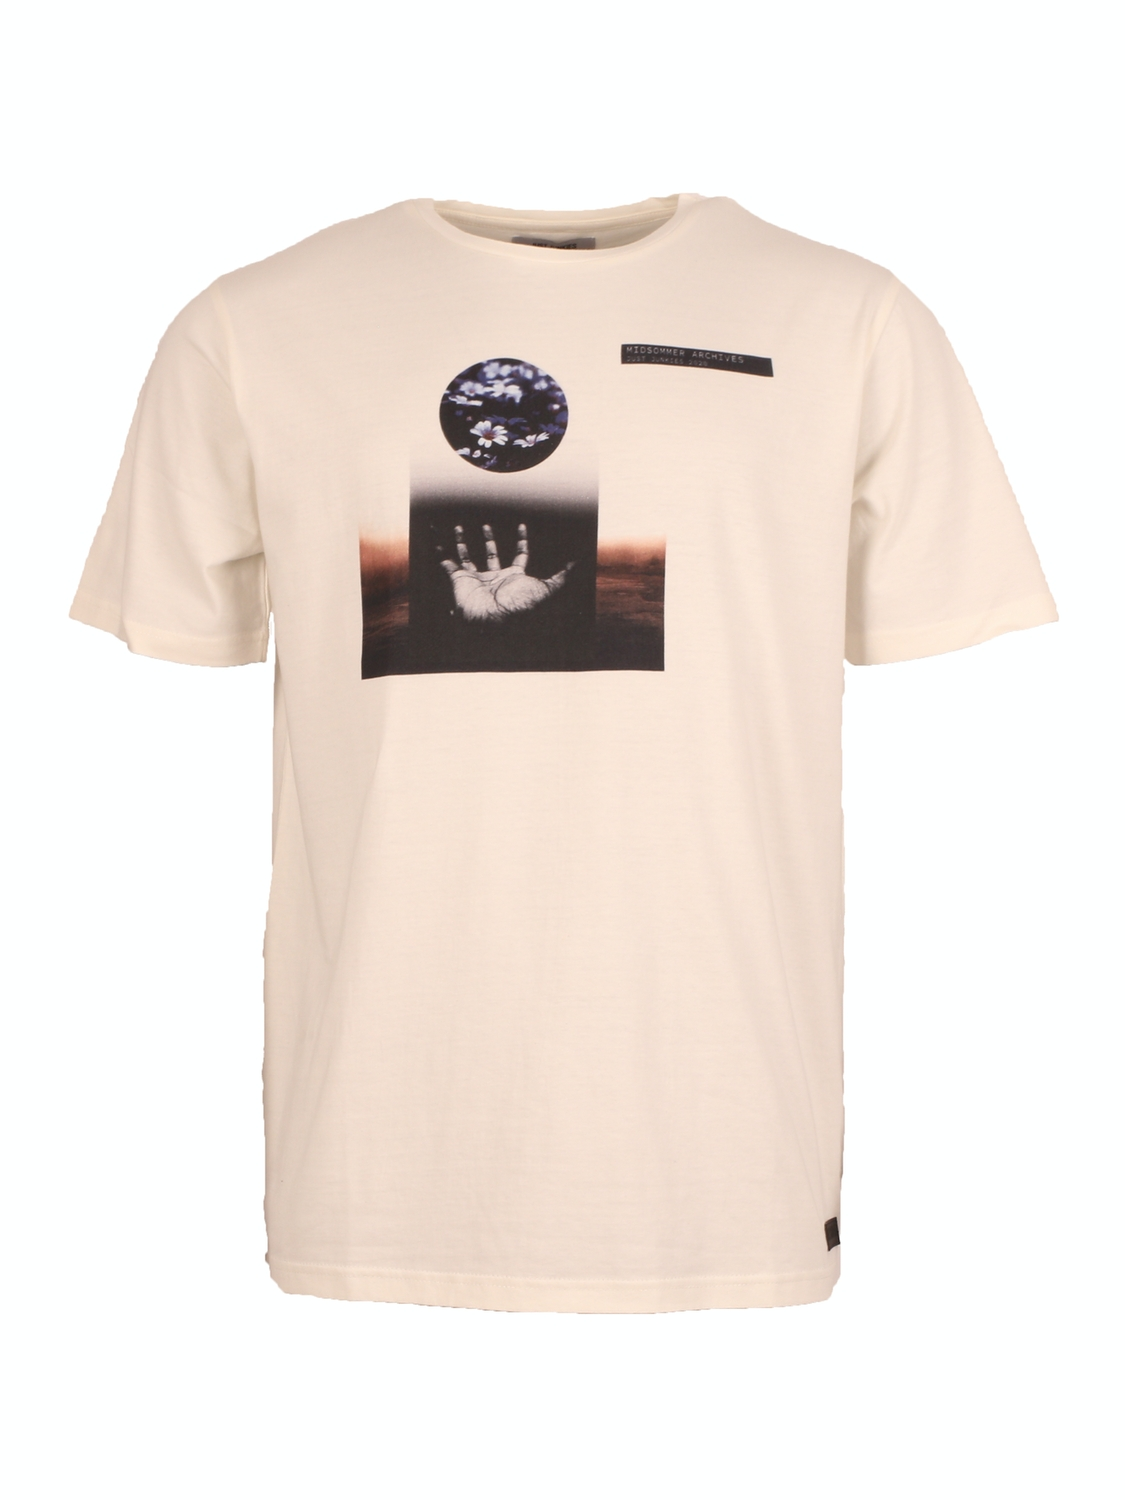 Just Junkies Moz Tee - Off White | GATE 36 Hobro